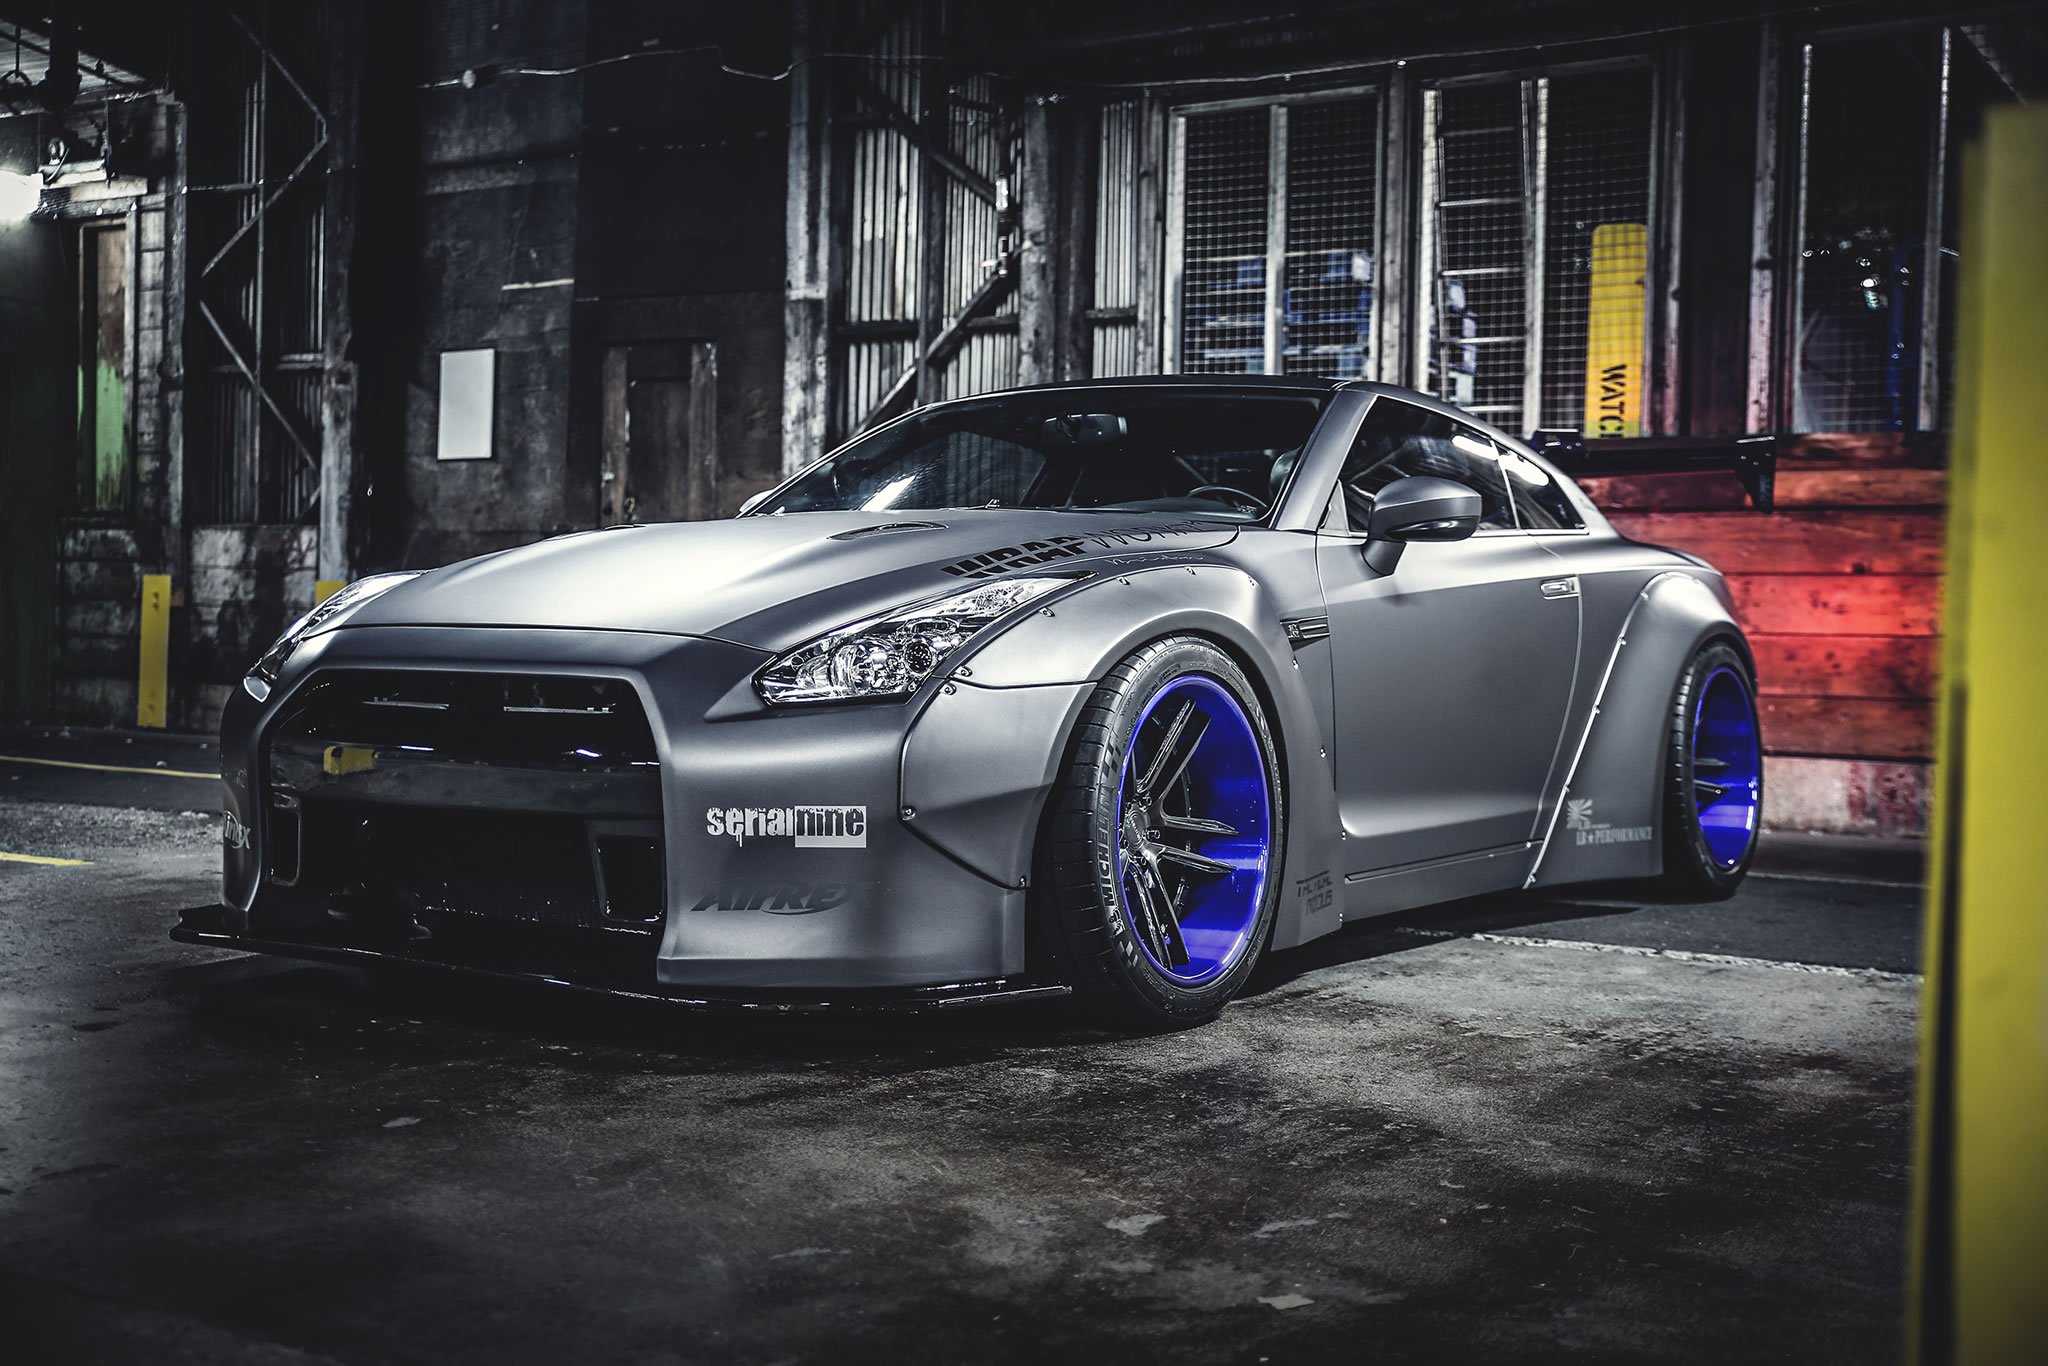 Hd Tune Up Cars Wallpaper 2013 Nissan Gt R By Liberty Walk Front Photo Airrex Air